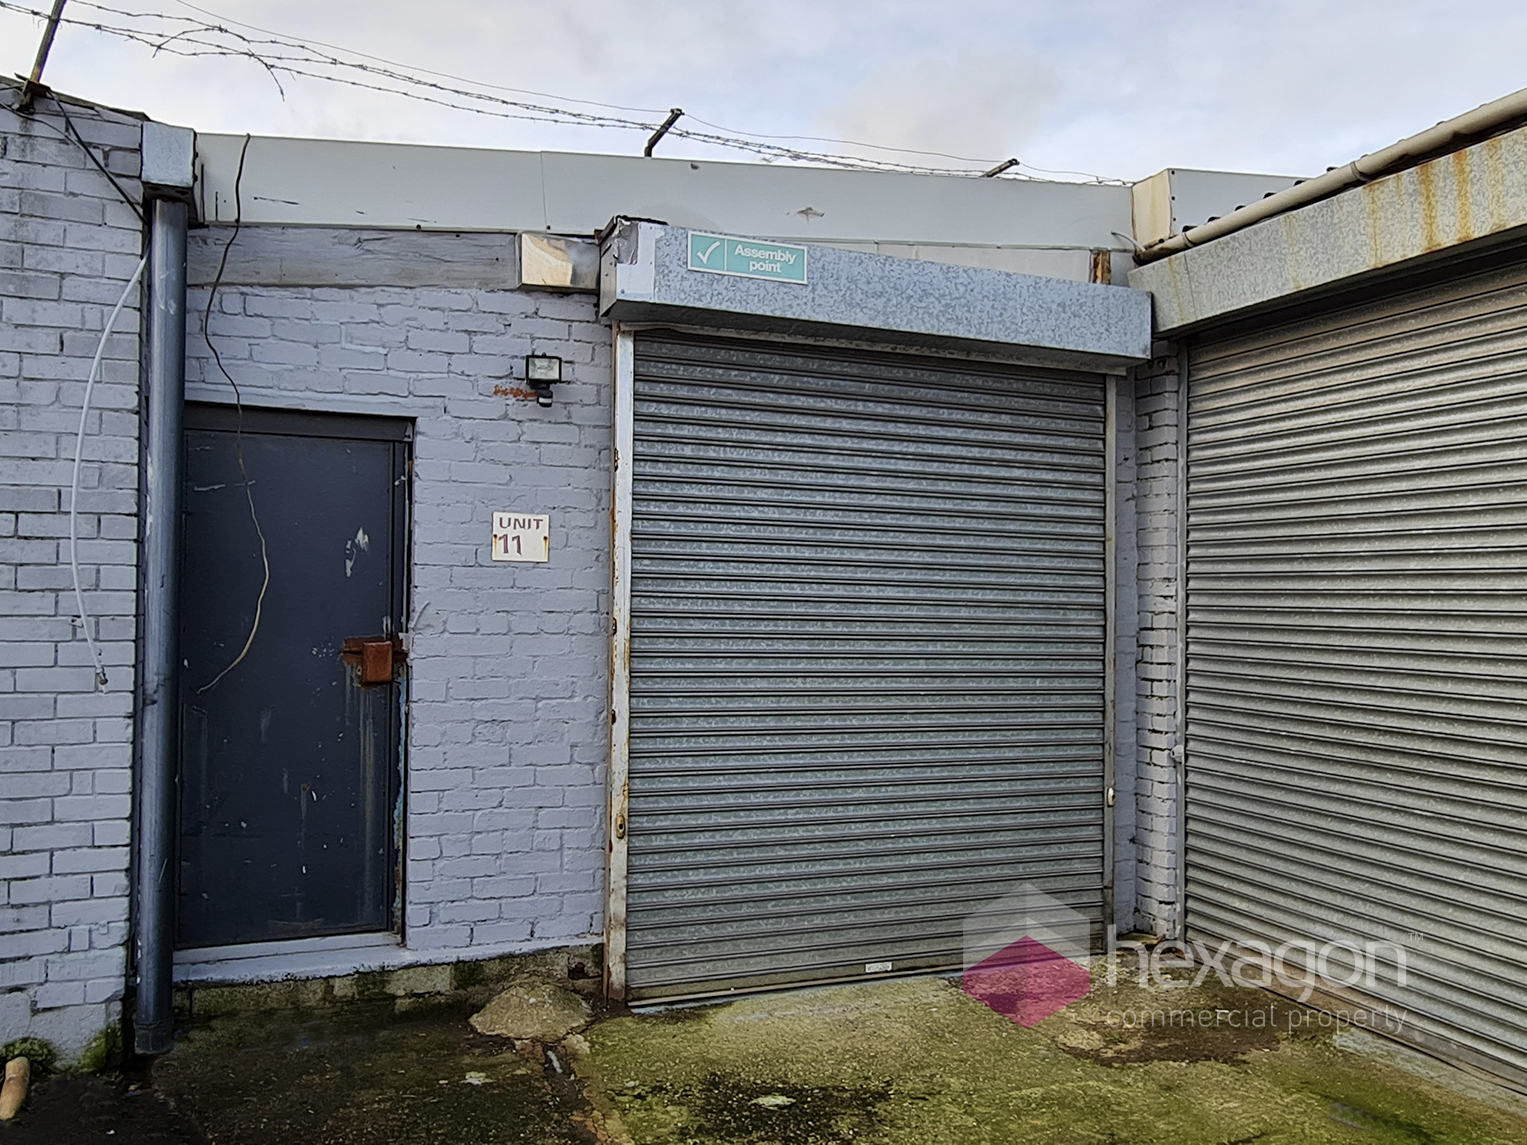 Unit 11 Manor Industrial Estate Walsall - Click for more details